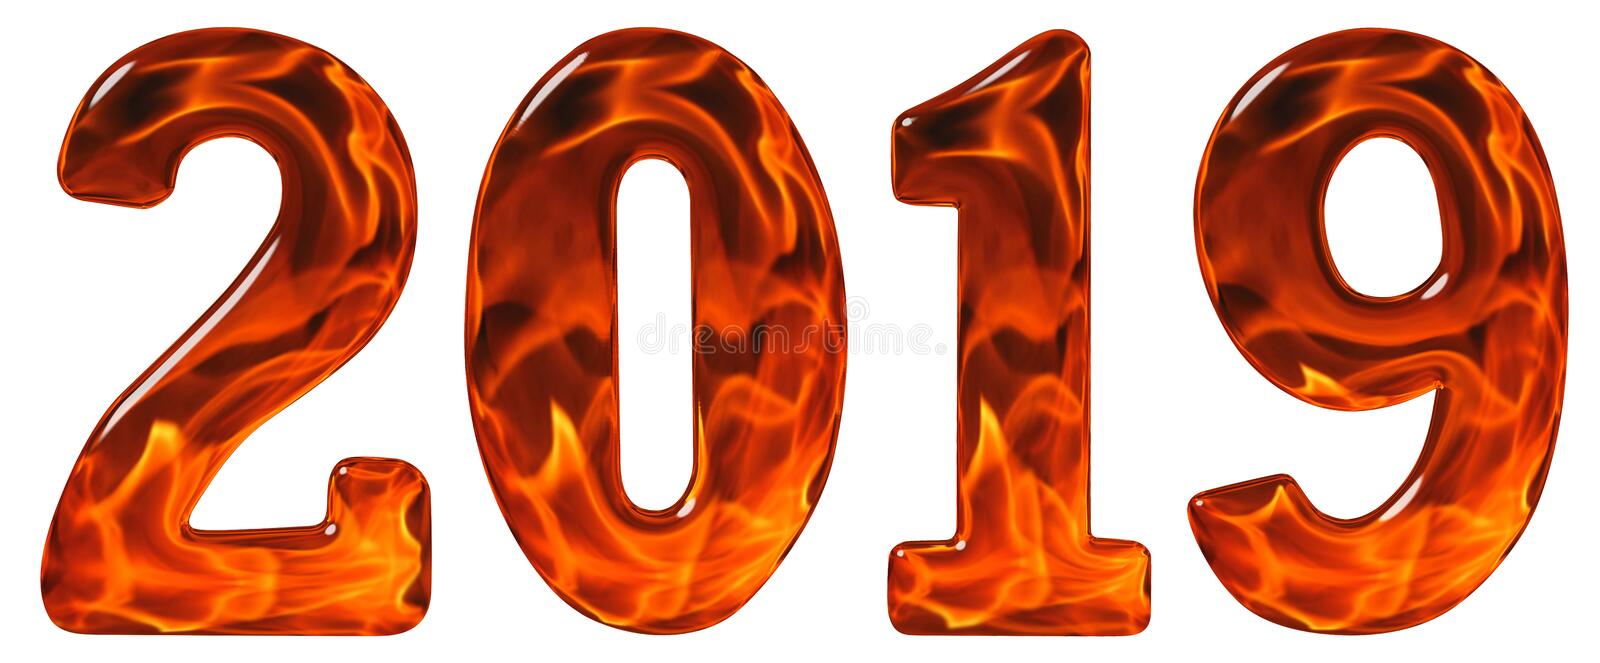 Numeral 2019 from glass with an abstract pattern of a flaming fire, isolated on white background, 3d render stock photography